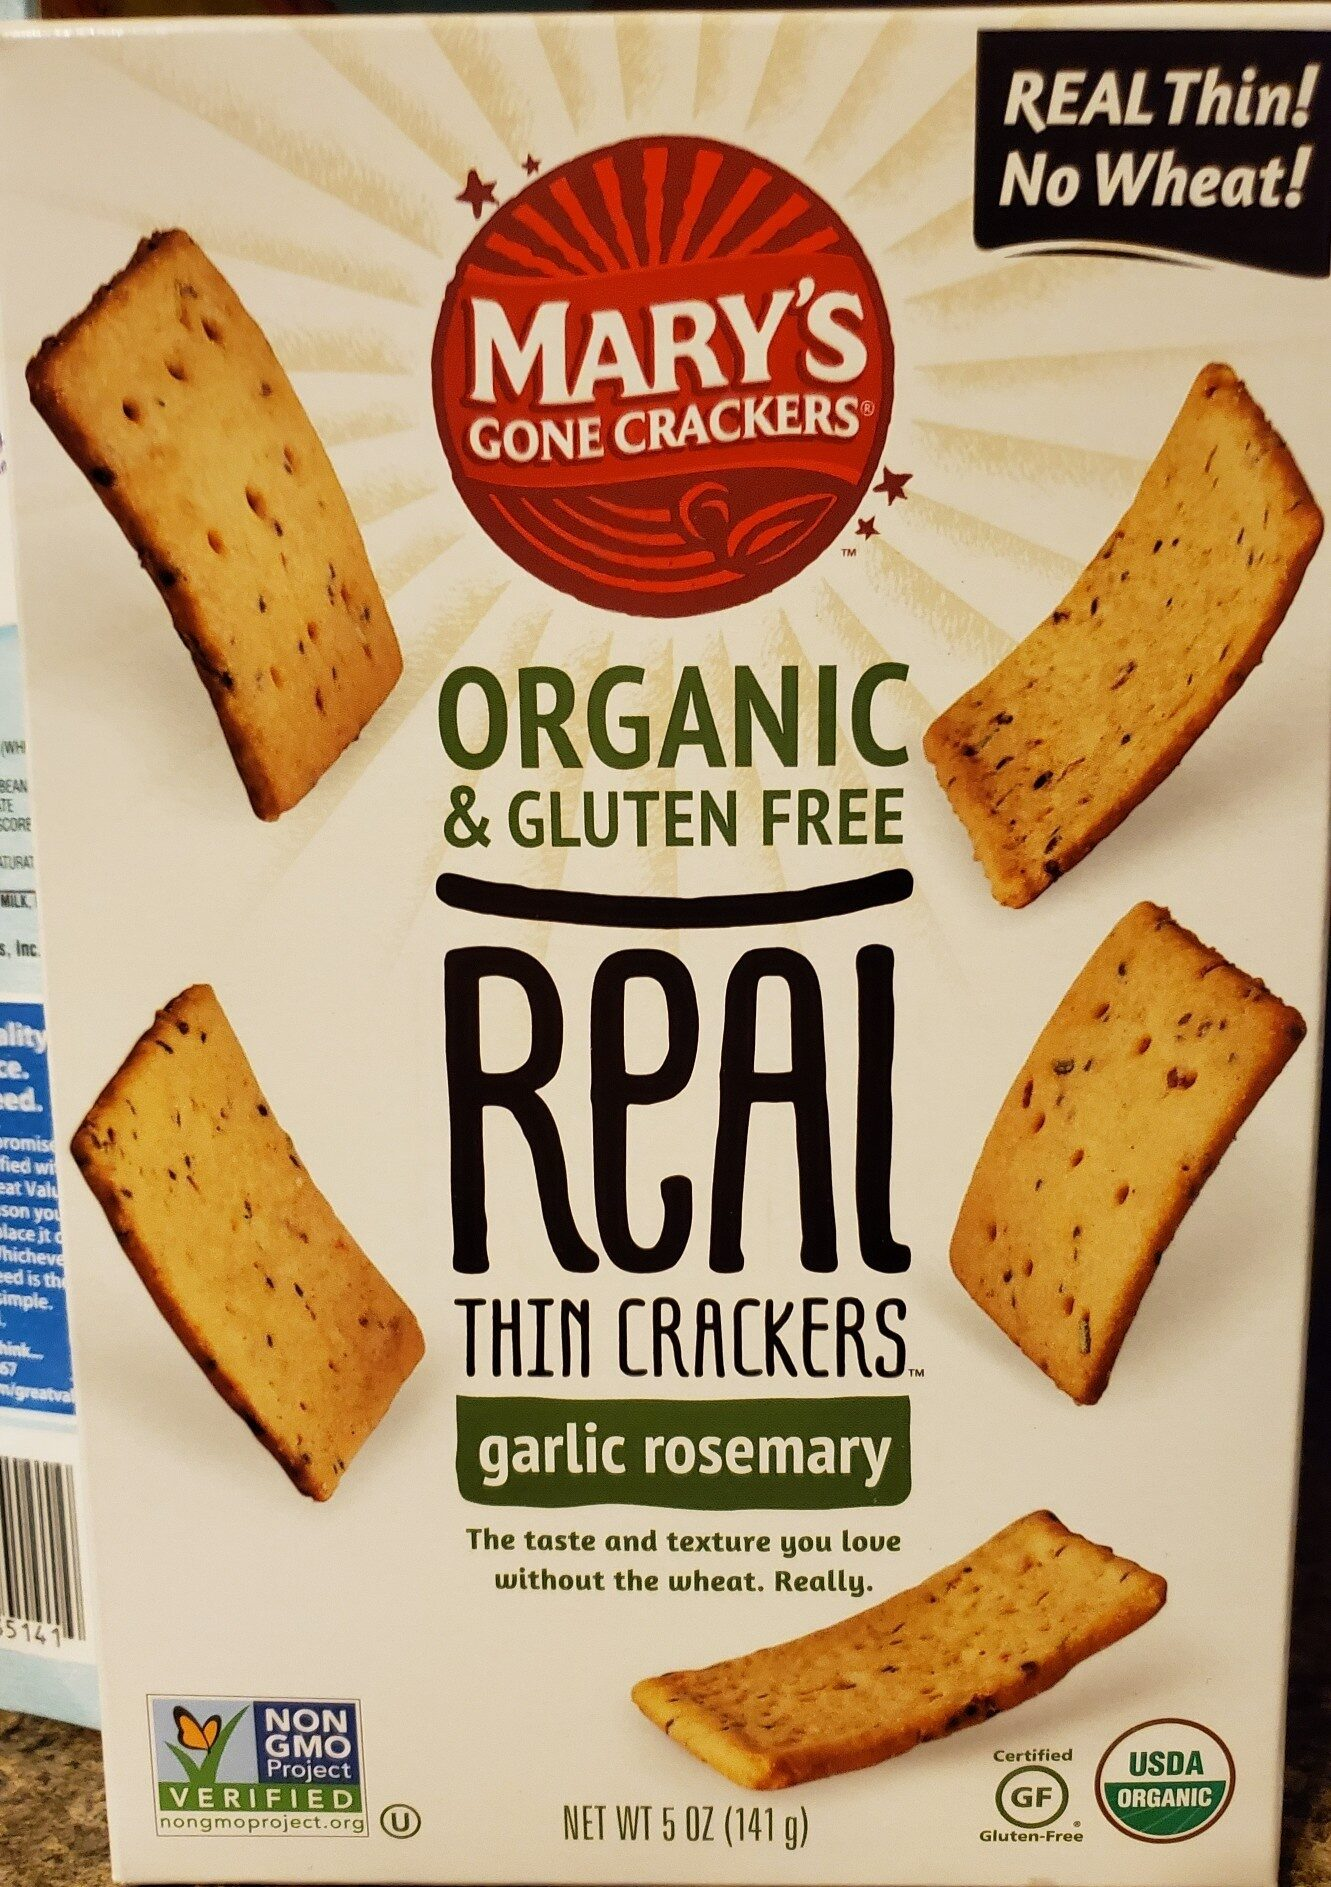 Organic & gluten free real thin crackers - Product - en